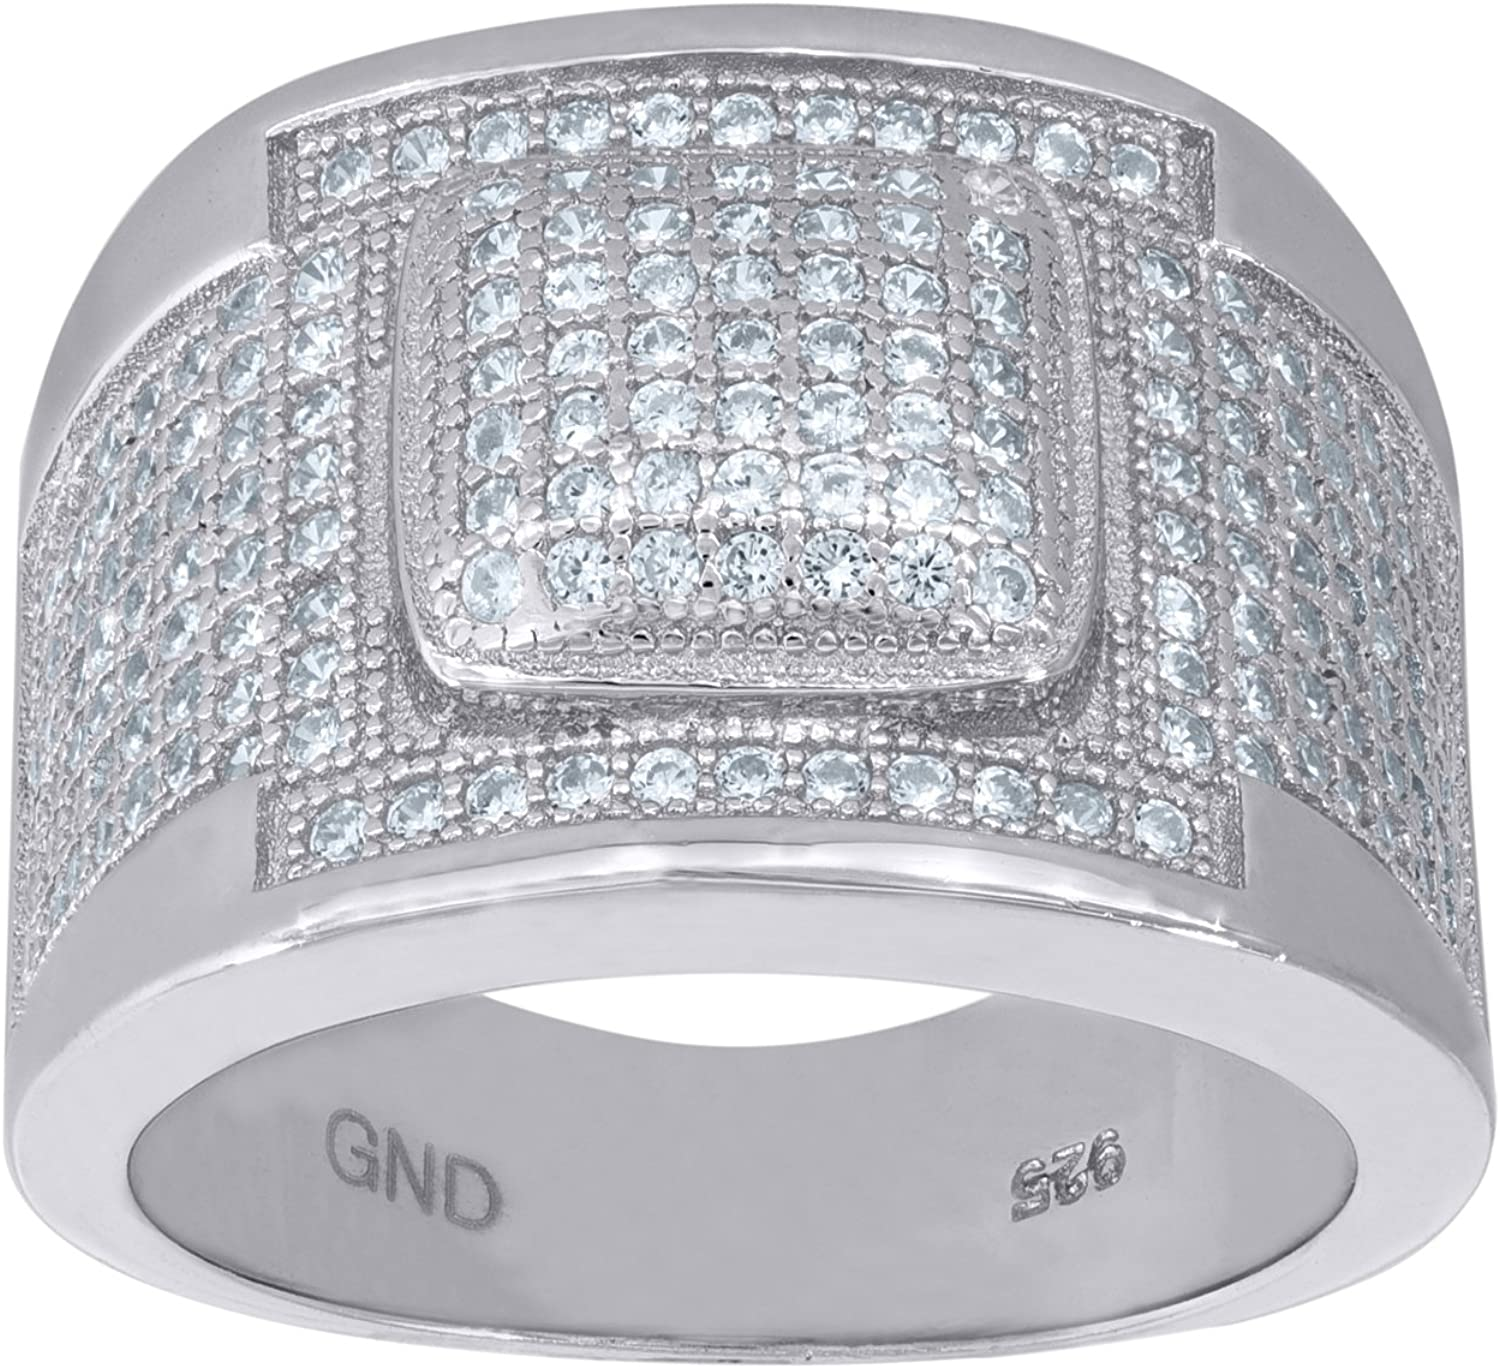 Jawa Jewelers 925 Sterling Silver Micro Pave Cubic Zirconia CZ Mens Fashion Ring Band